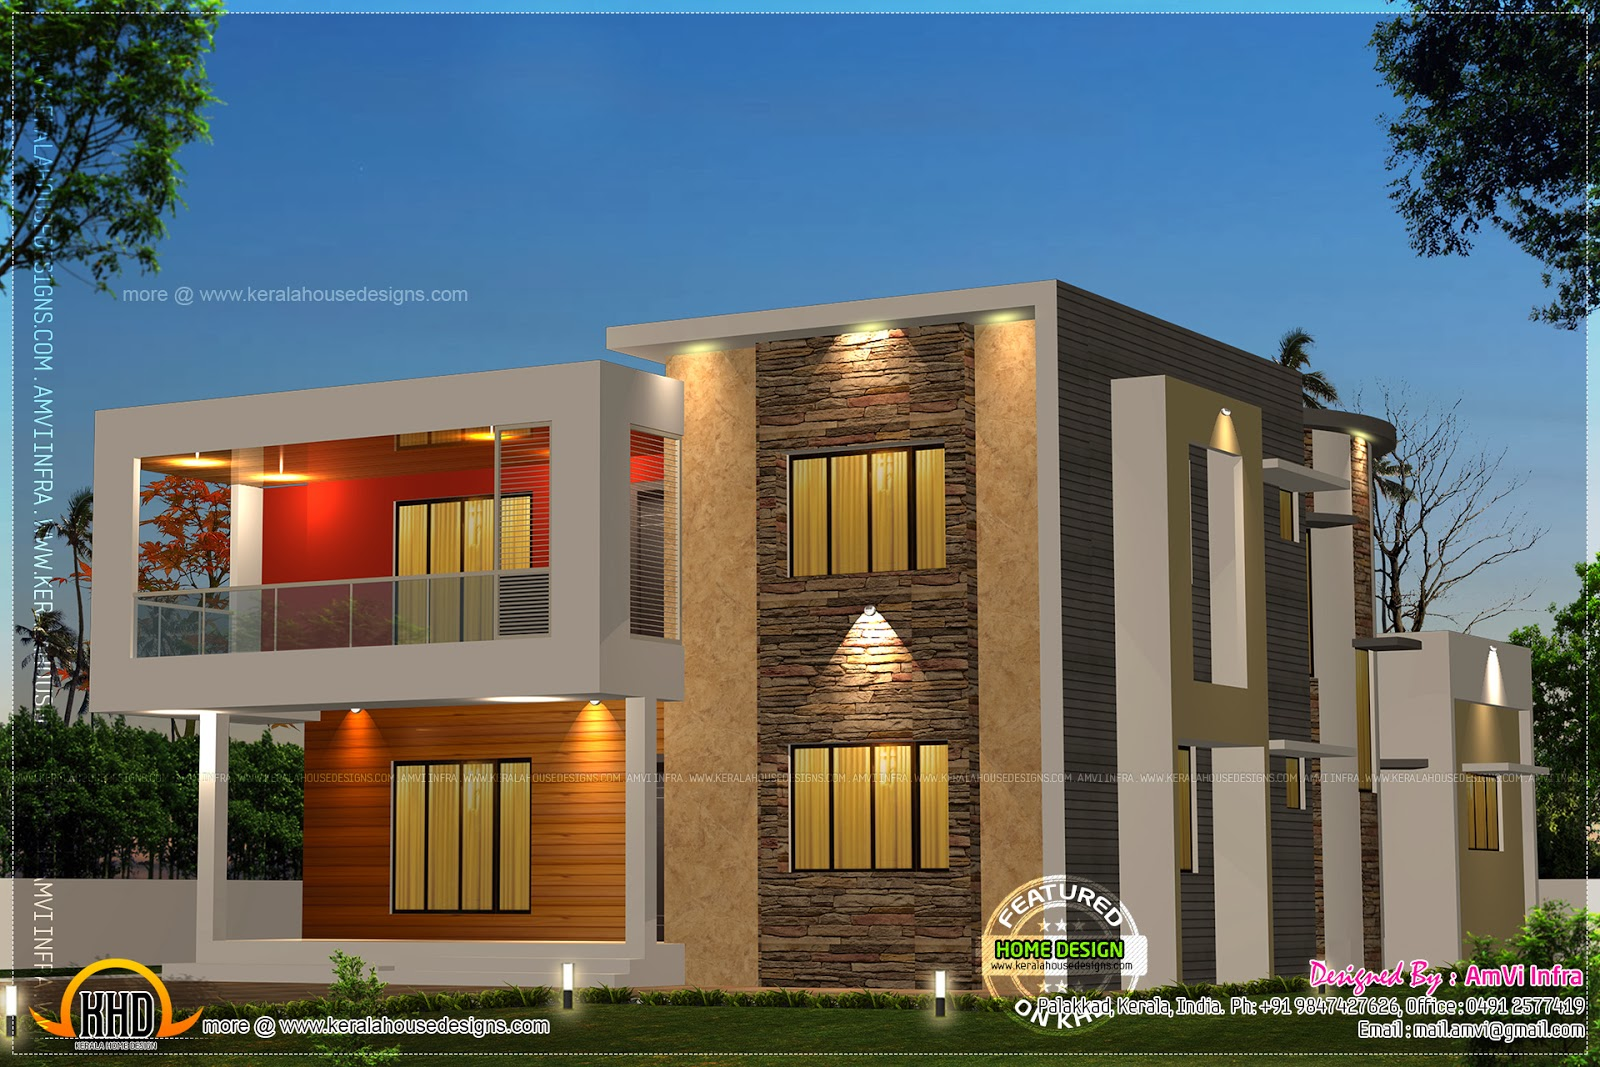 5 bedroom contemporary house with plan indian house plans for 5 bedroom house ideas